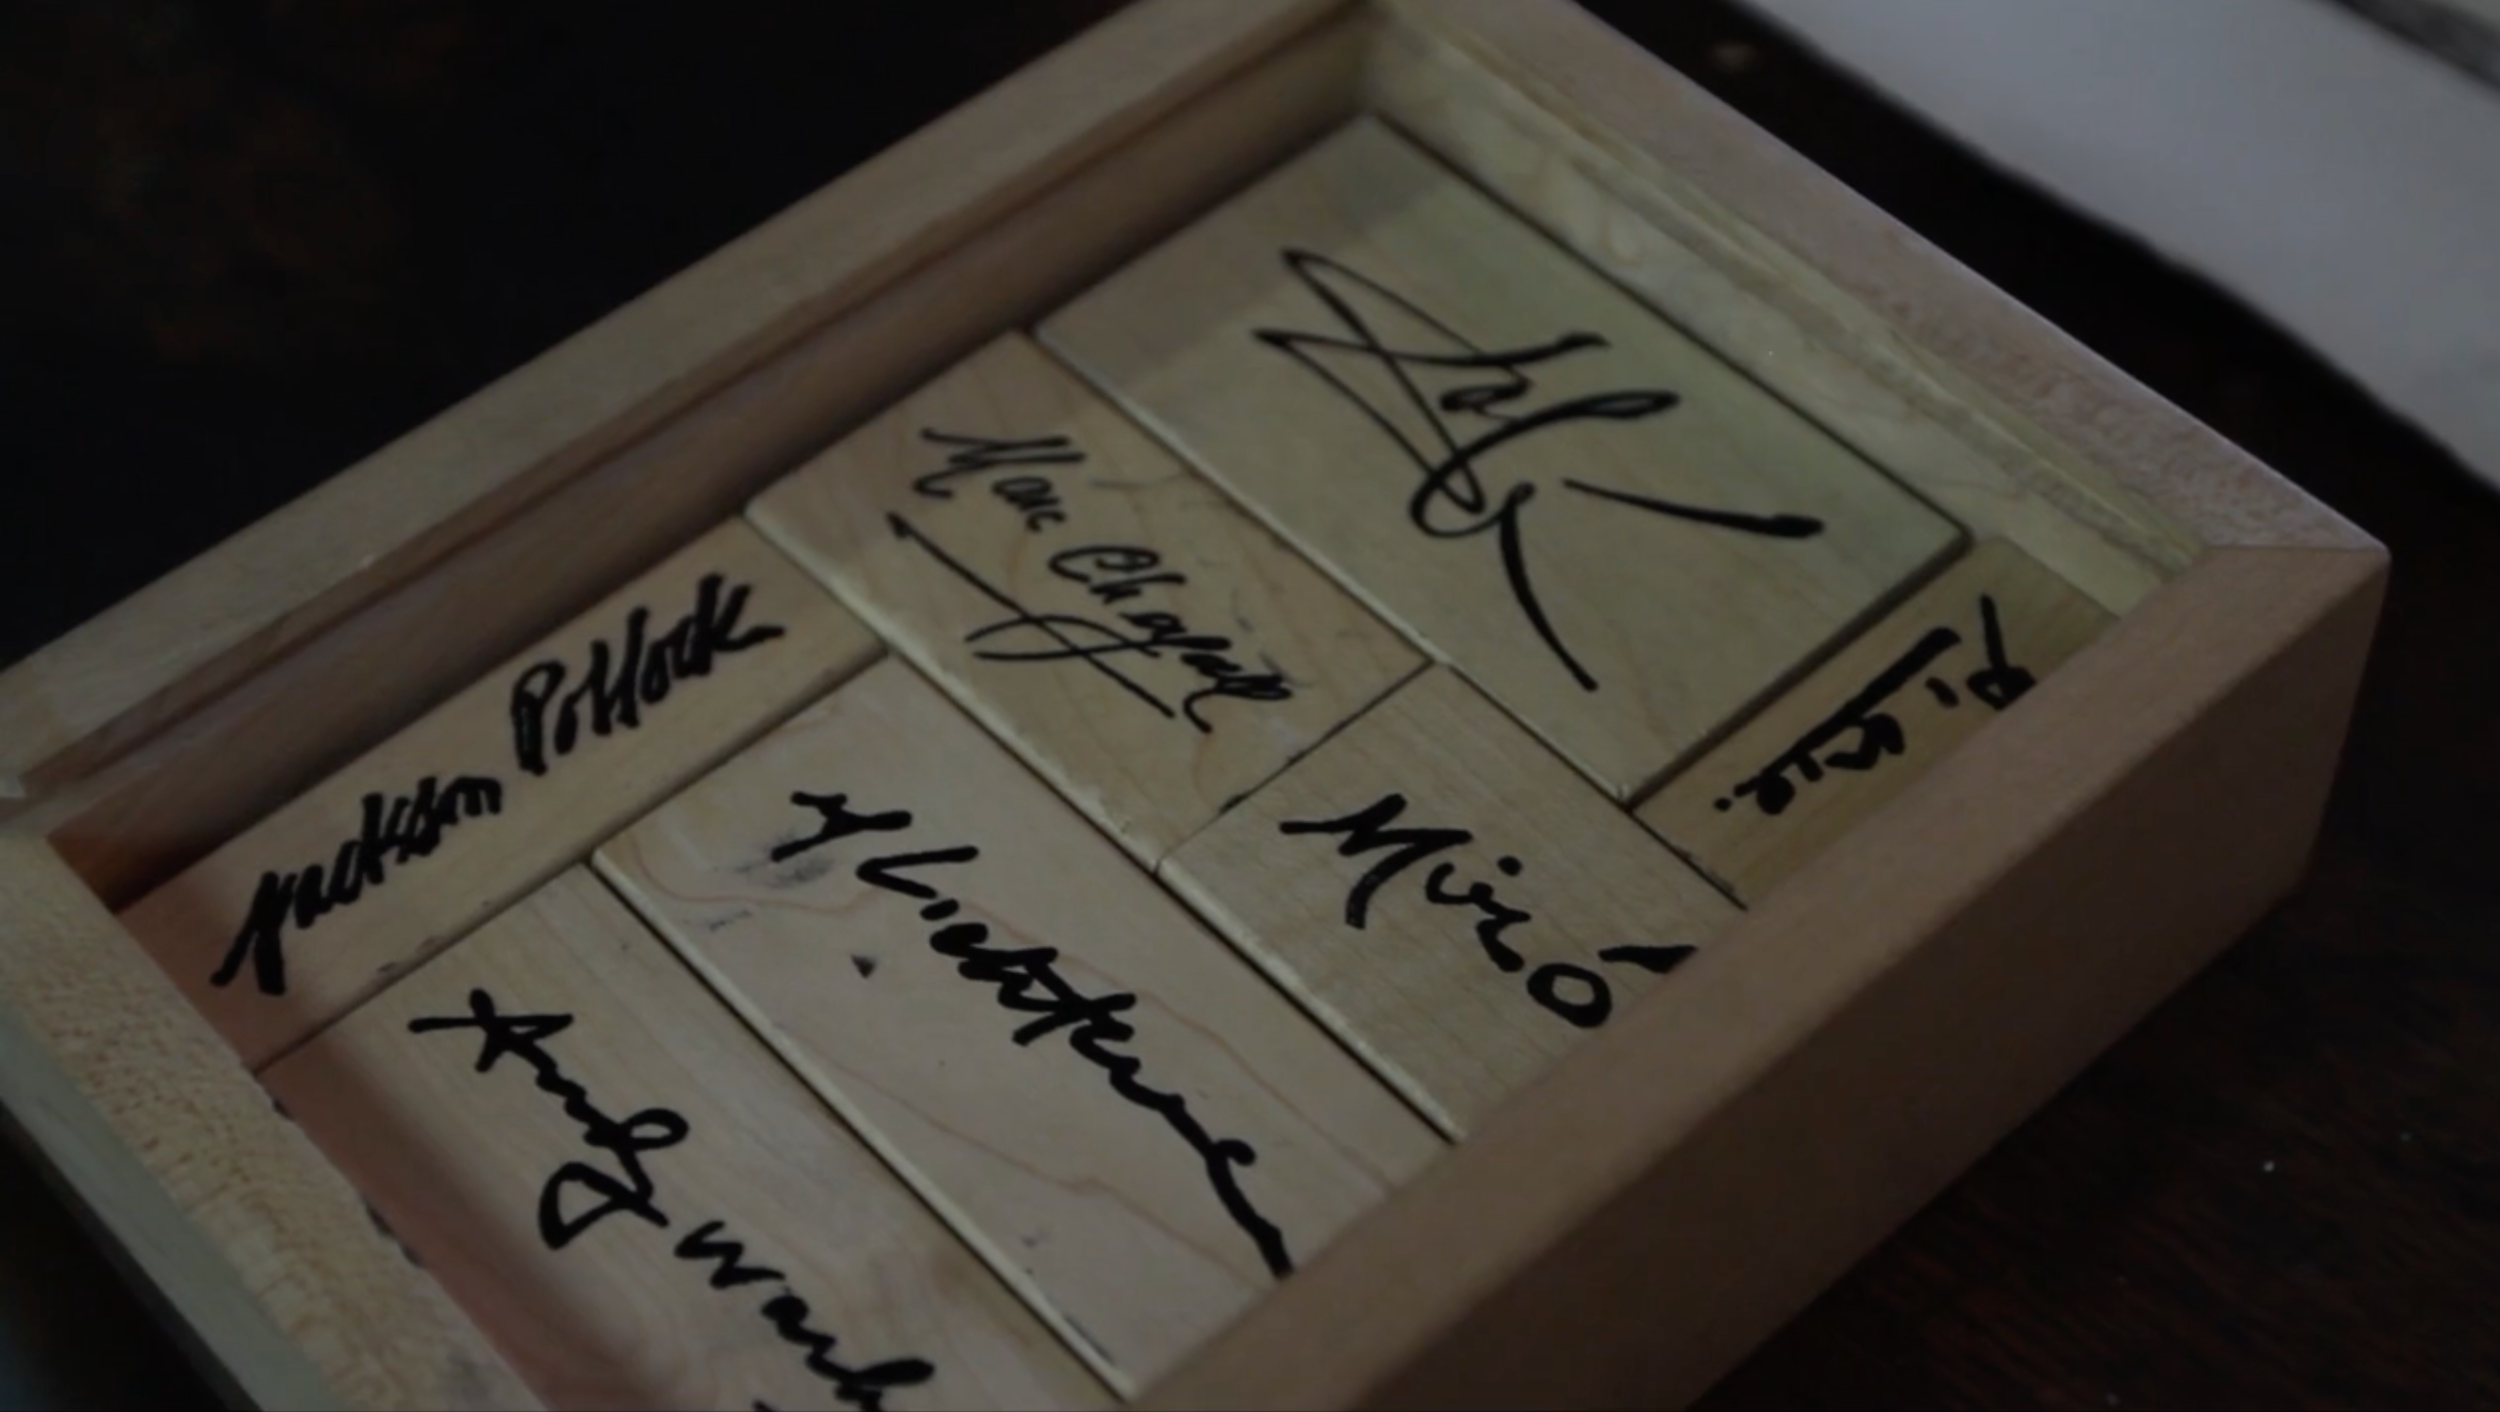 Screen Shot 2016-08-08 at 5.21.18 PM.png